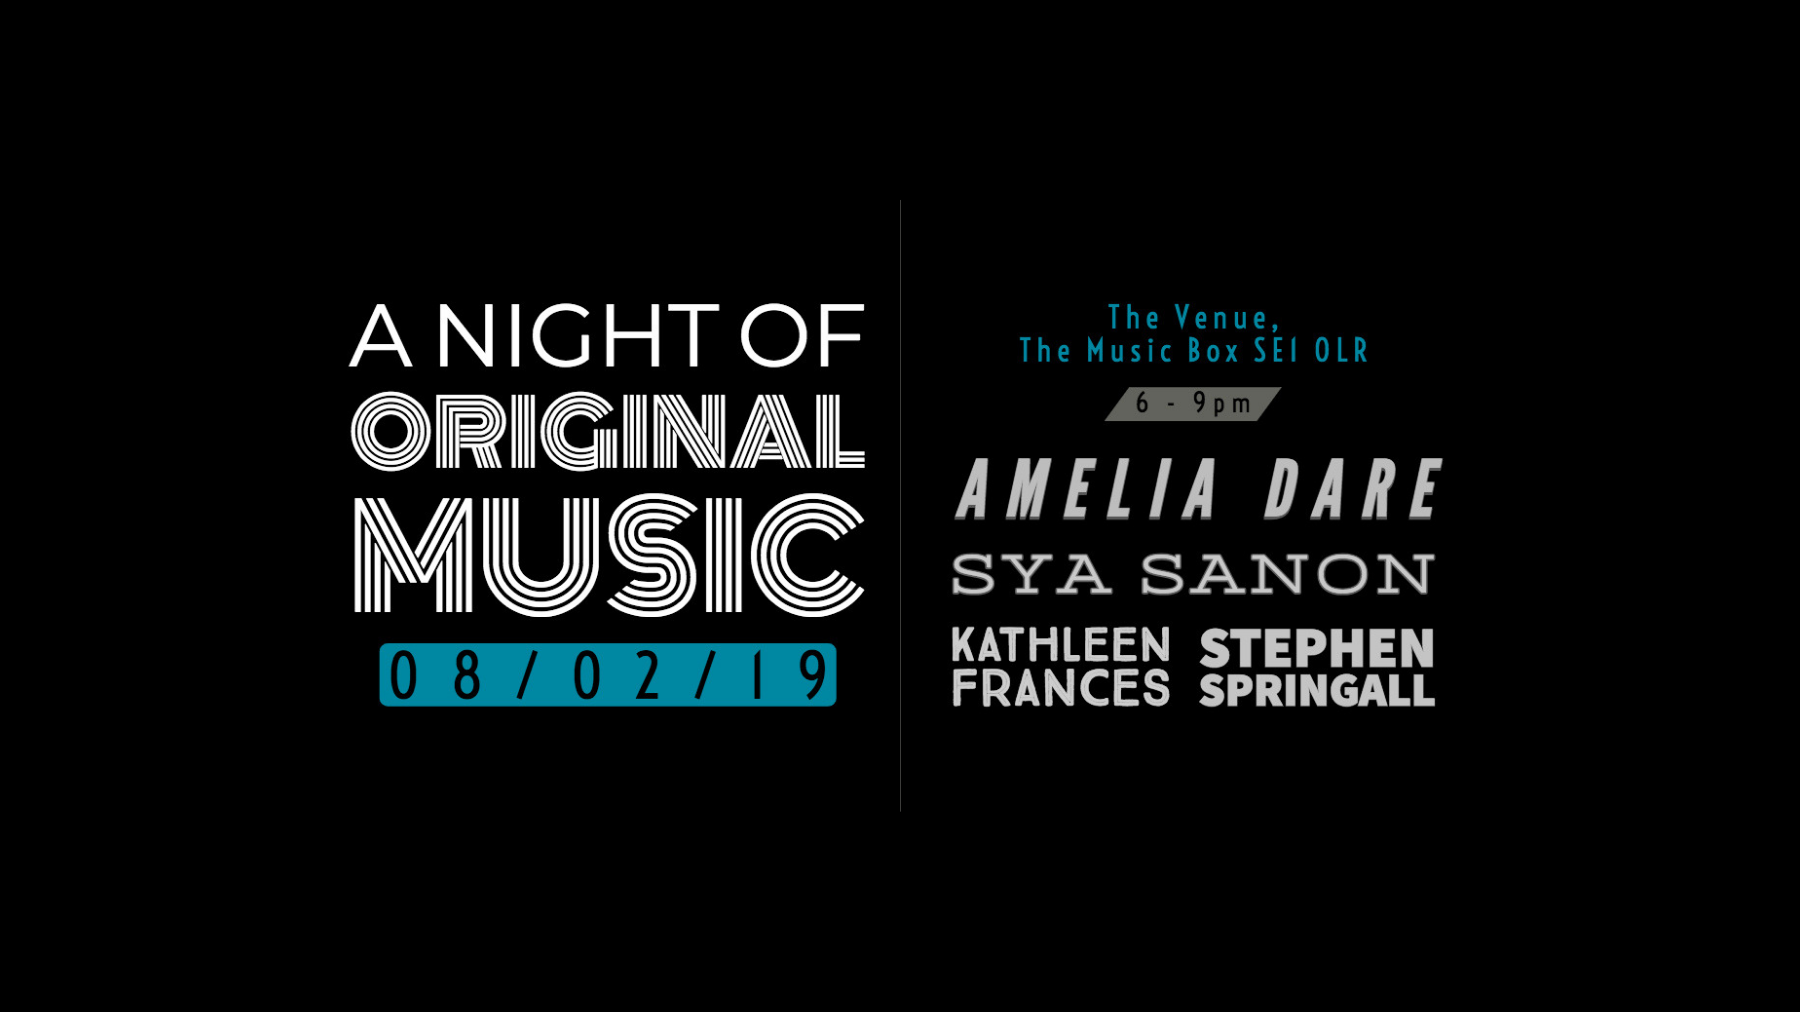 A Night of Original Music